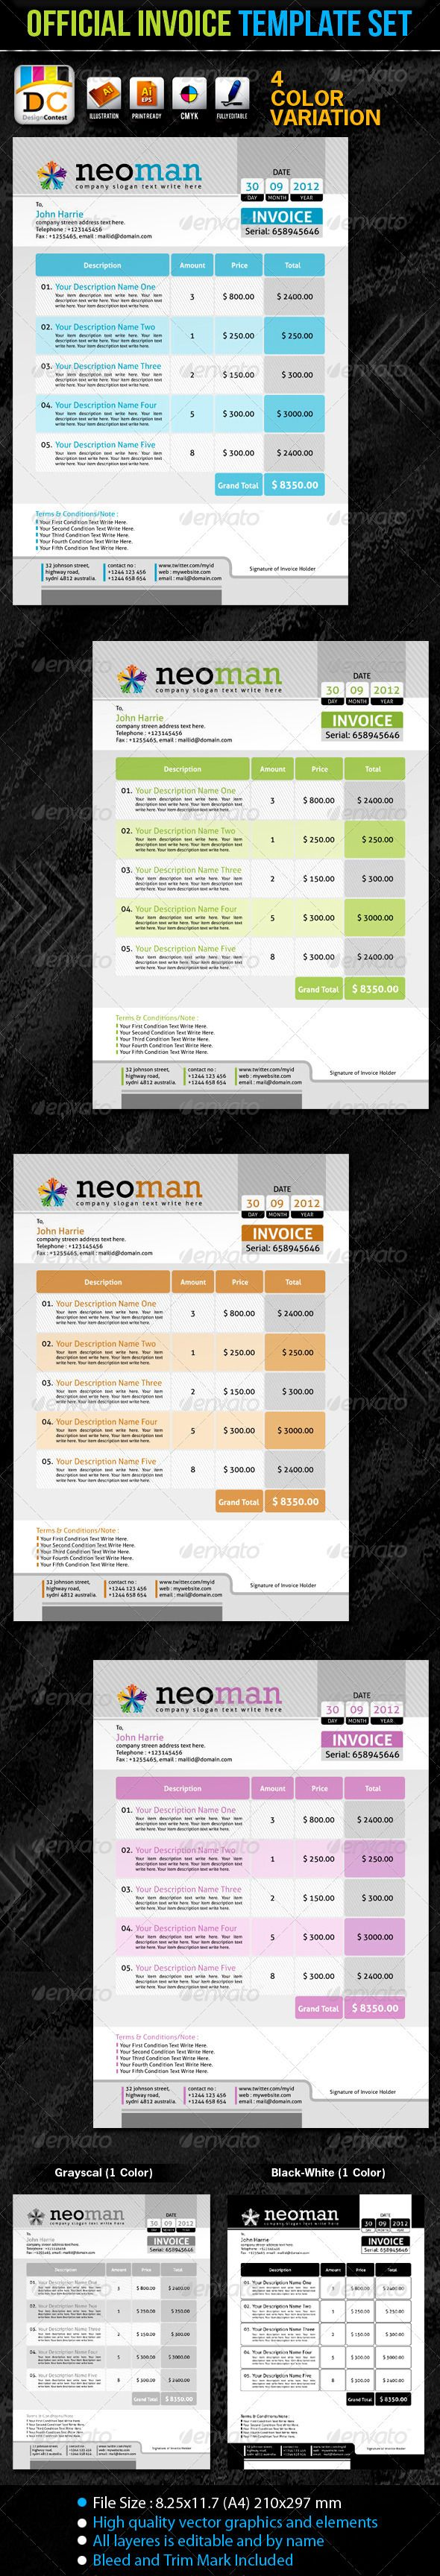 Crv Invoice Word The  Best Invoice Template Ideas On Pinterest  Invoice Layout  Receipt Paper For Star Tsp100 Excel with Word 2003 Invoice Template Neomanofficial Invoice Template Set Open Office Template Invoice Word